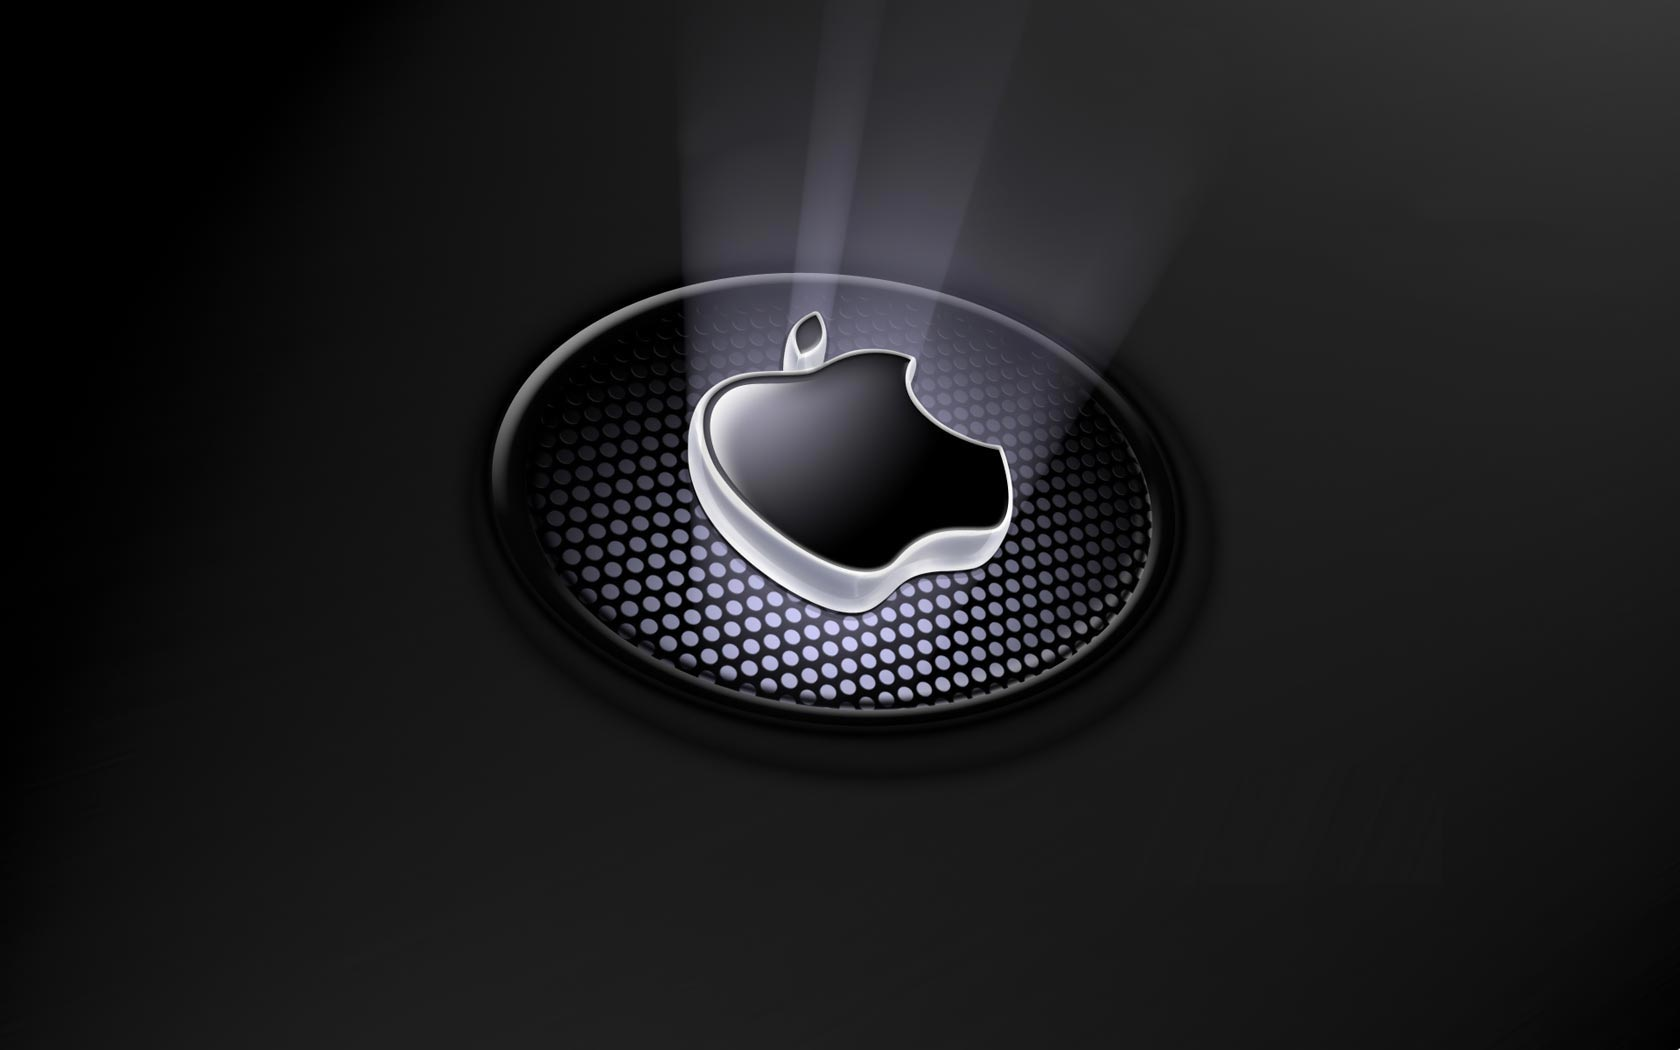 Apple logo wallpaper hd Wallpaper